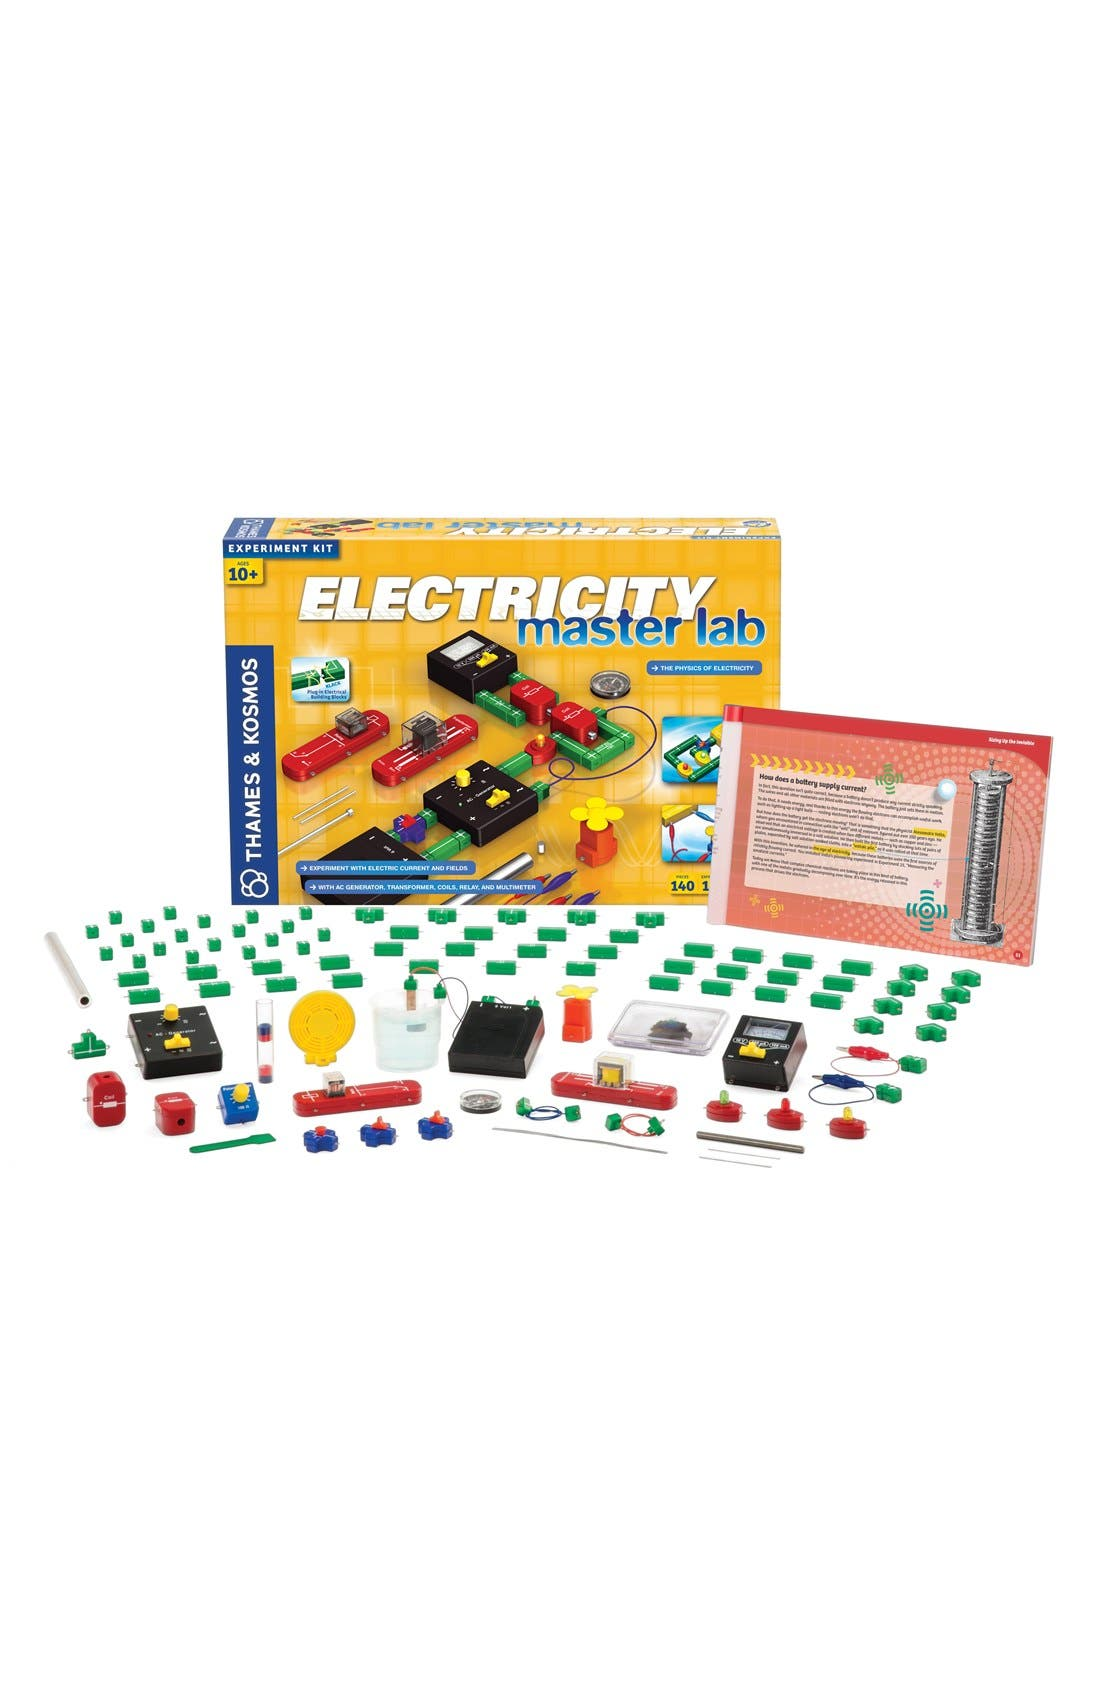 Alternate Image 1 Selected - Thames & Kosmos 'Electricity Master Lab' Experiment Kit